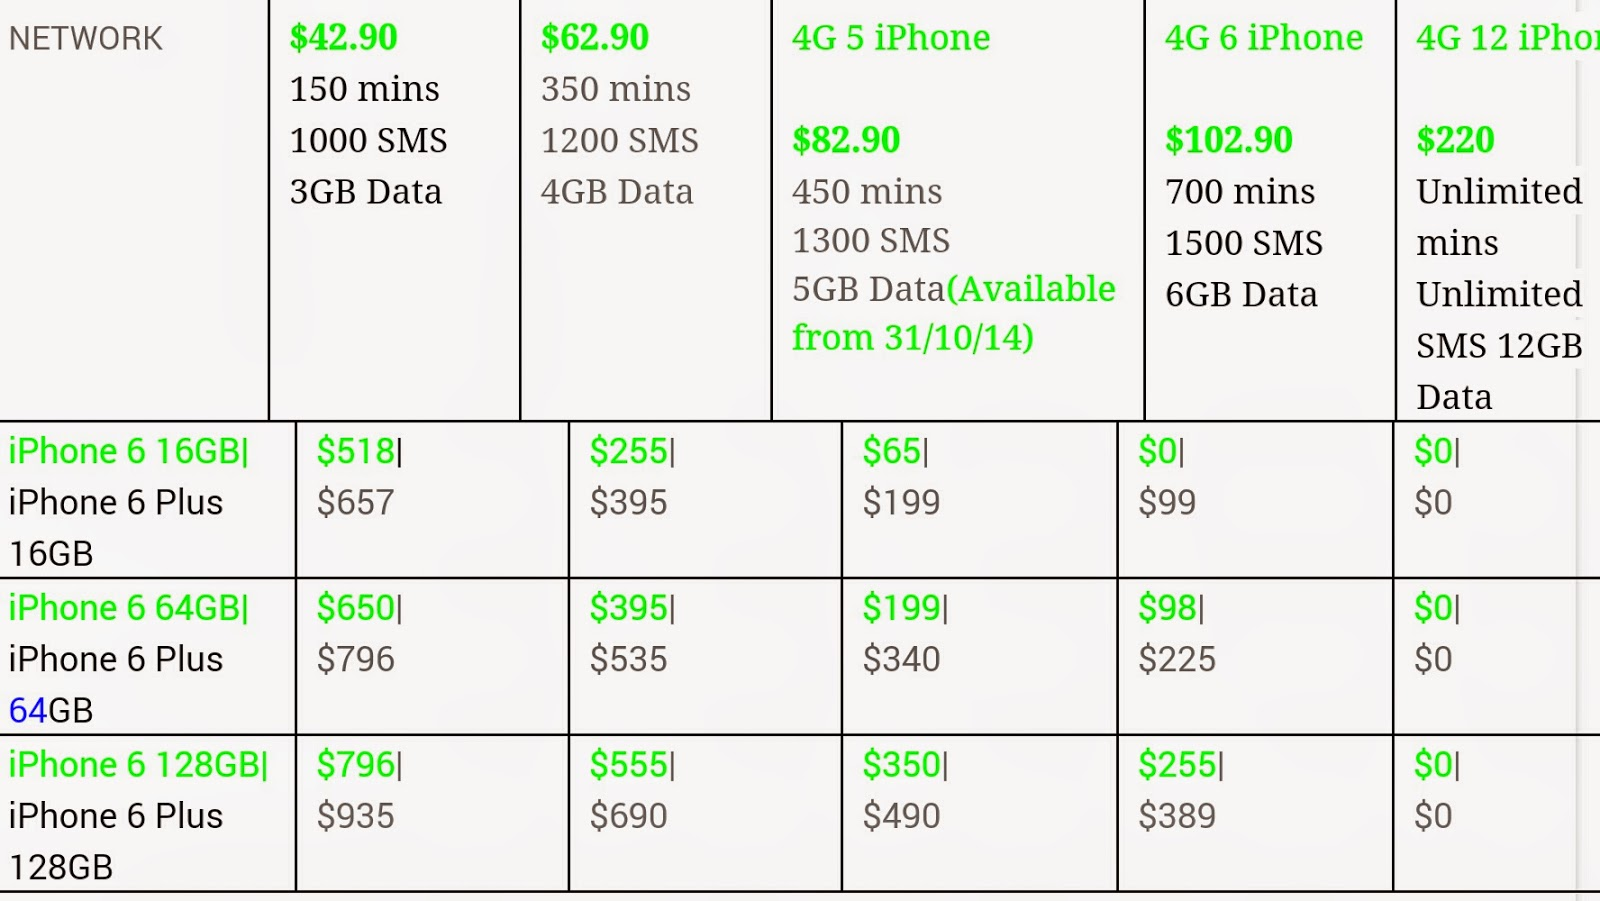 iphone 6 price apple store. iphone 6 and + phones will be available on sim plan soon. 4g value added service is waived till 2016. http://iphone.starhub.com/ iphone price apple store